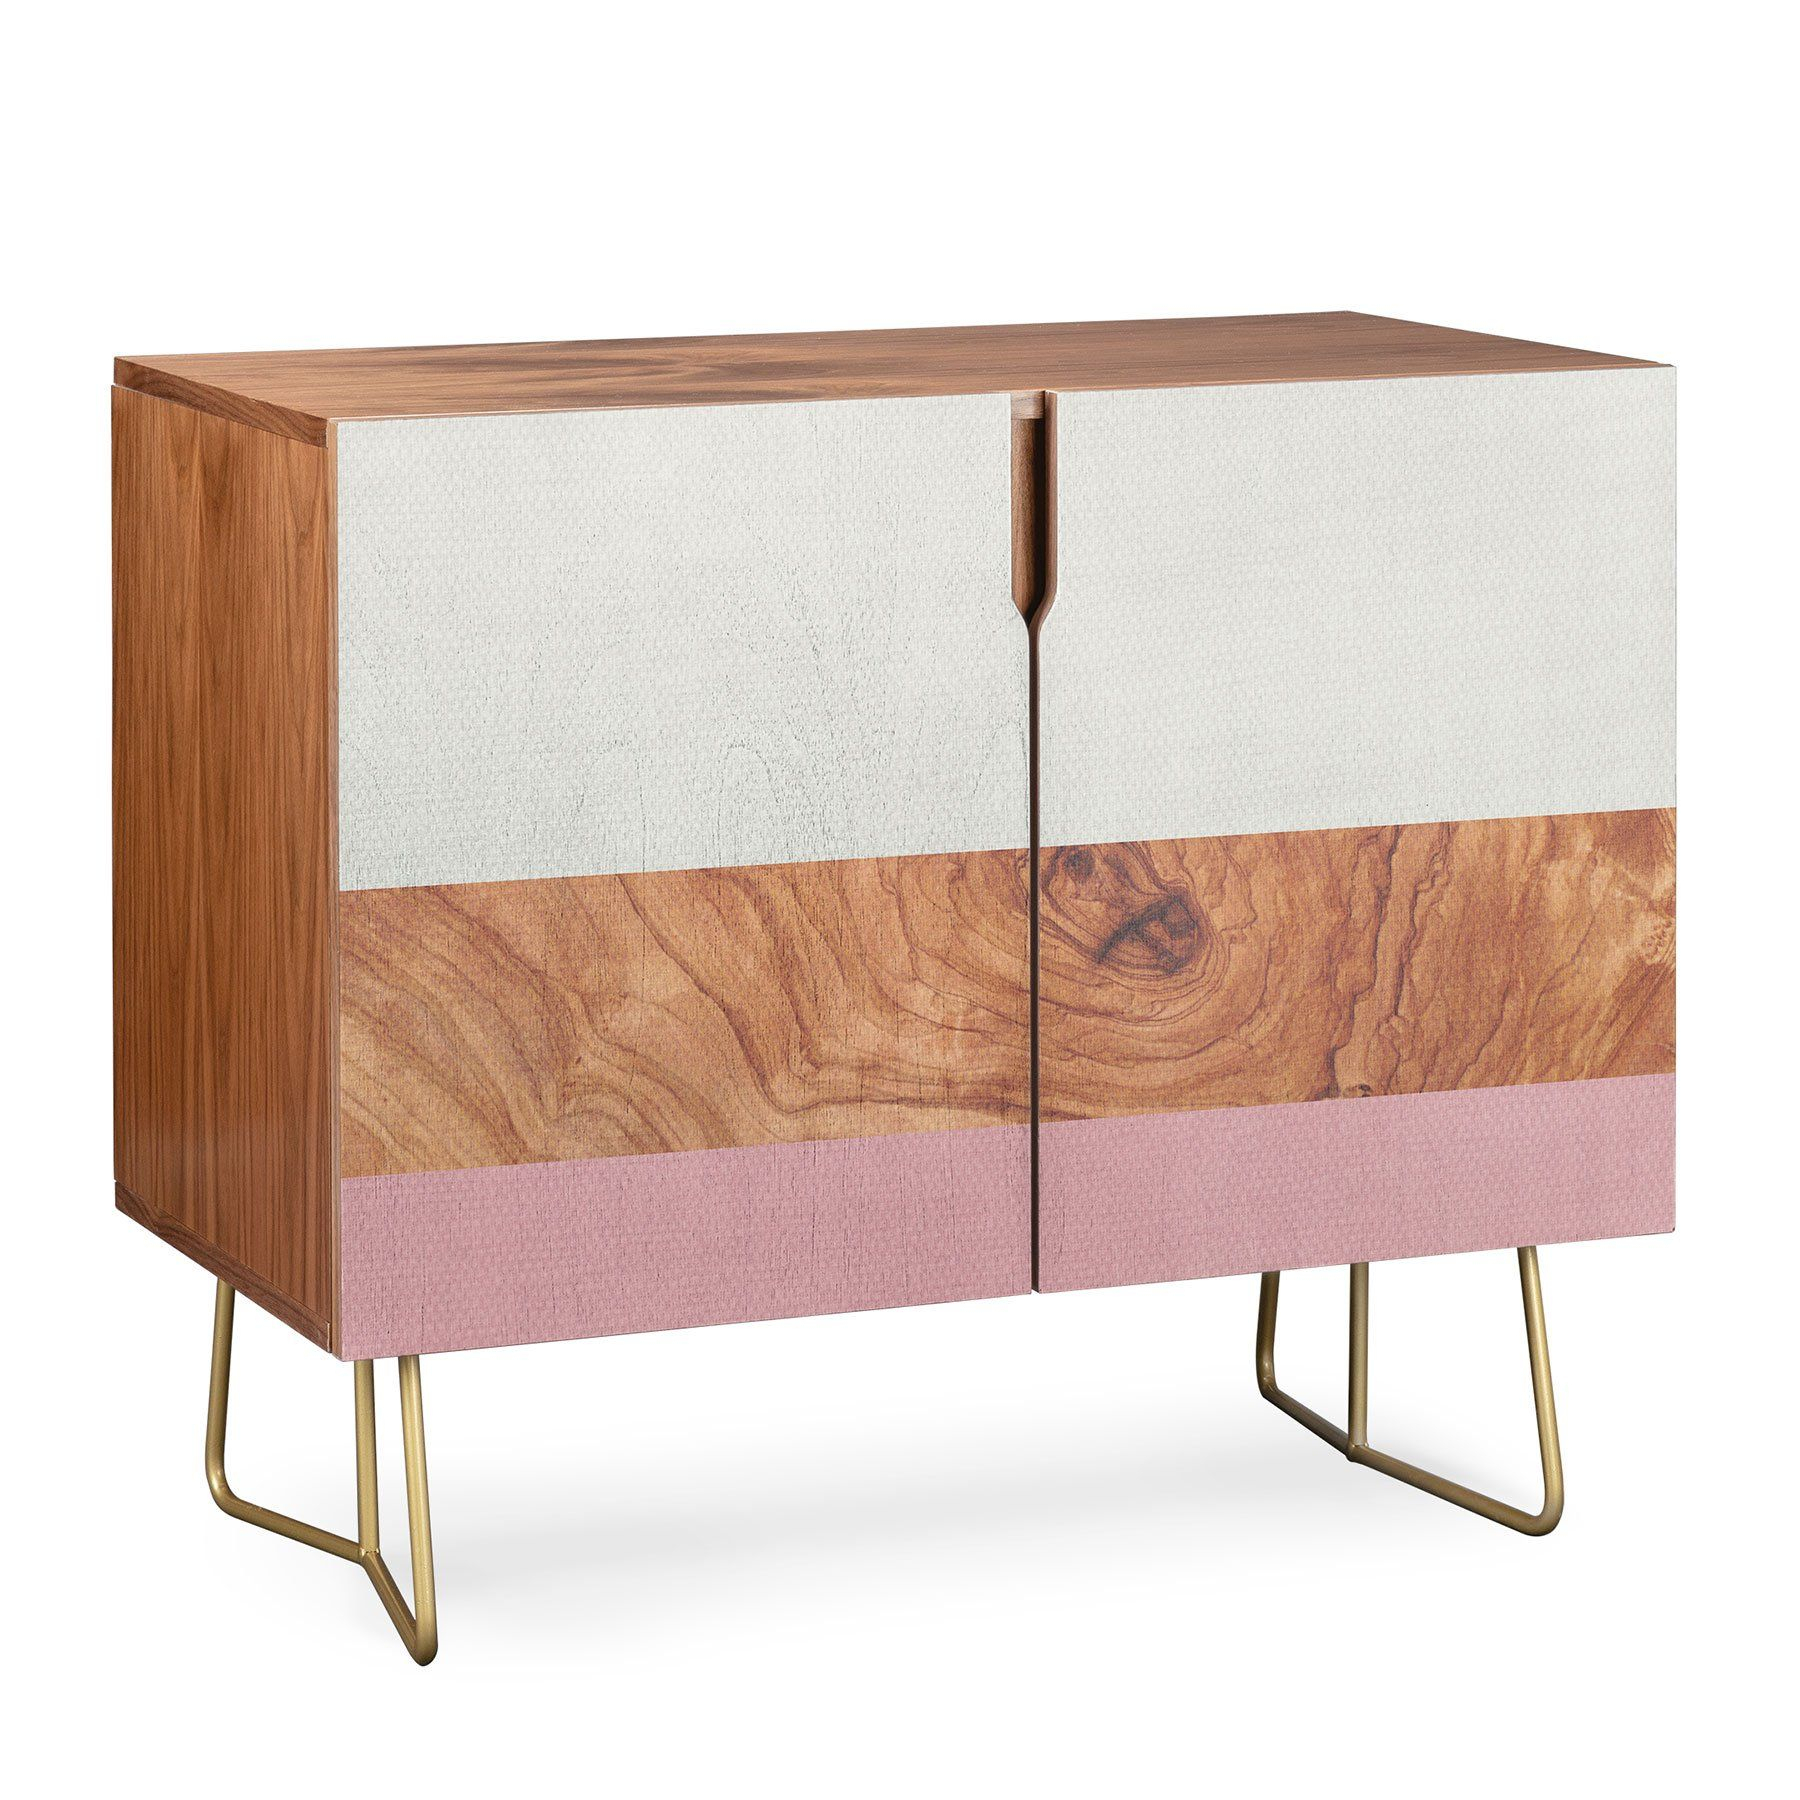 Deny Designs Line Geo Credenza (Birch Or Walnut, 2 Leg with regard to Line Geo Credenzas (Image 8 of 30)